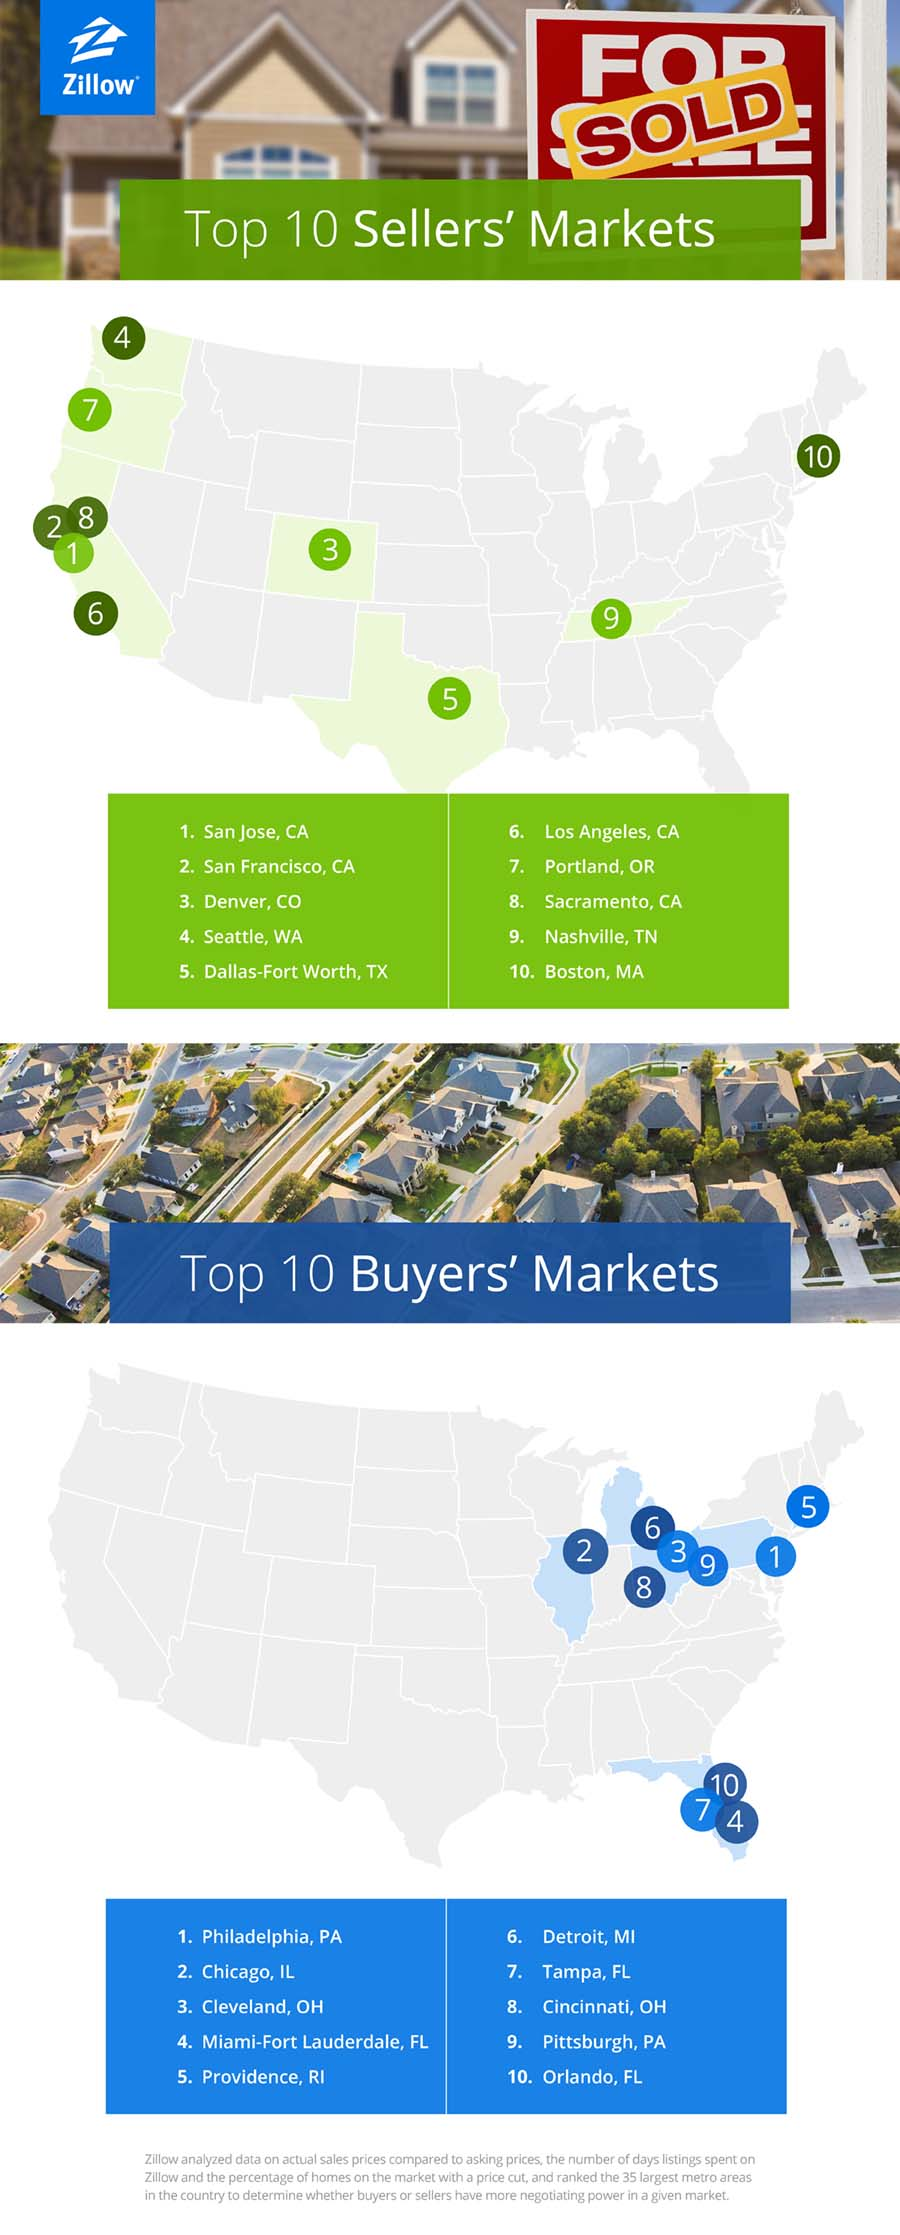 zillow ranks best markets for ers sellers